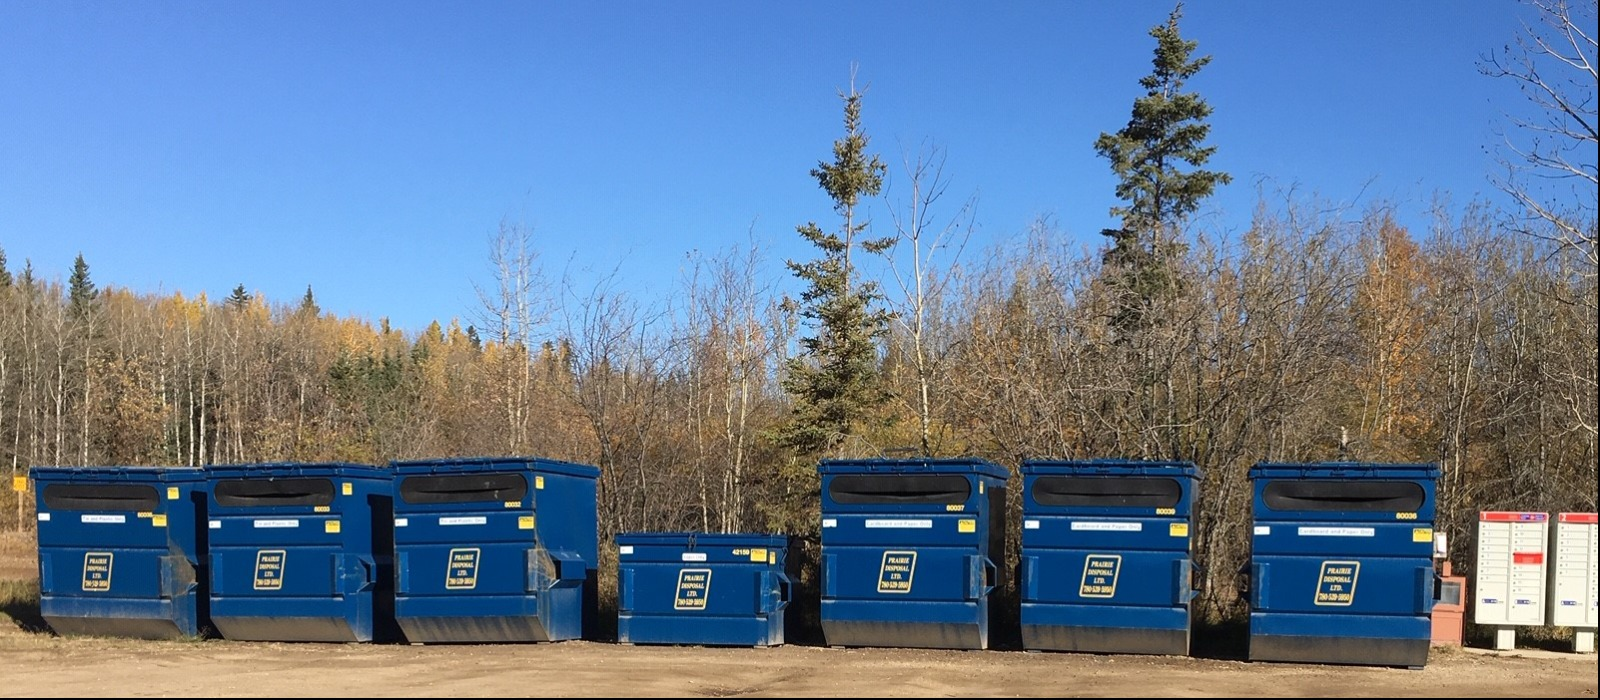 Large blue metal recycling bins with trees in the background